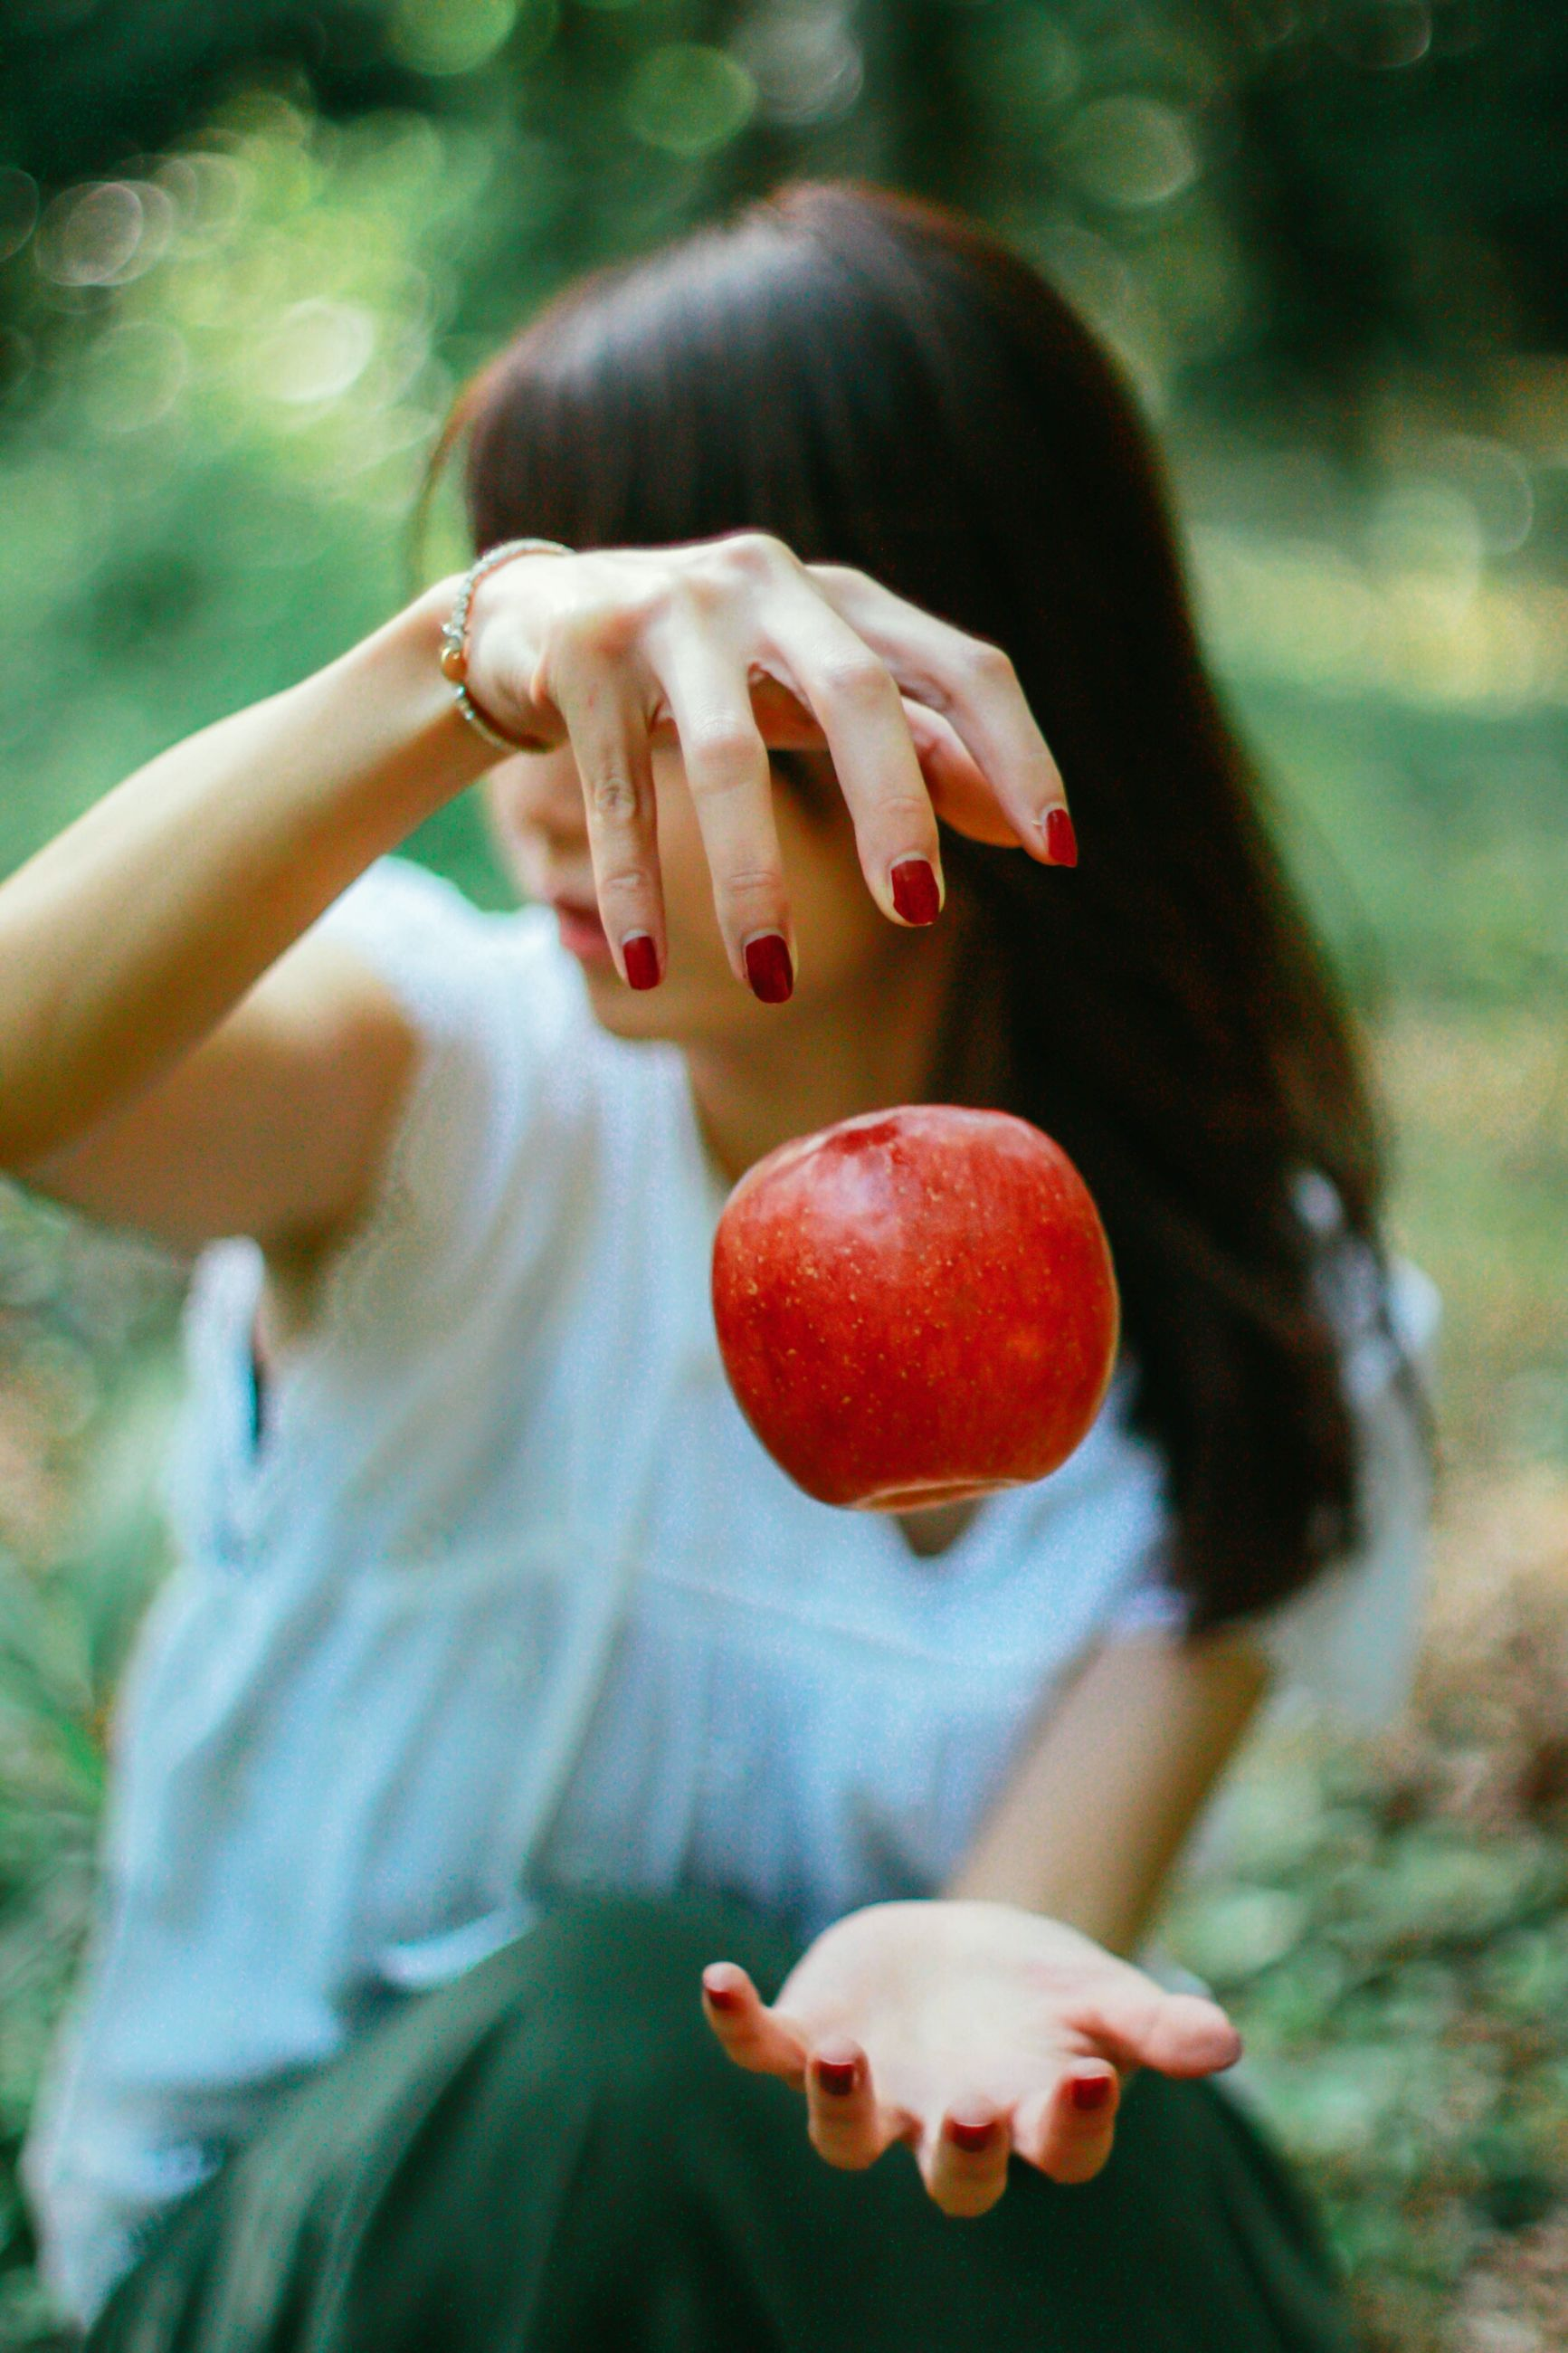 one person, real people, fruit, human hand, red, women, focus on foreground, day, outdoors, human body part, food, close-up, freshness, nature, people